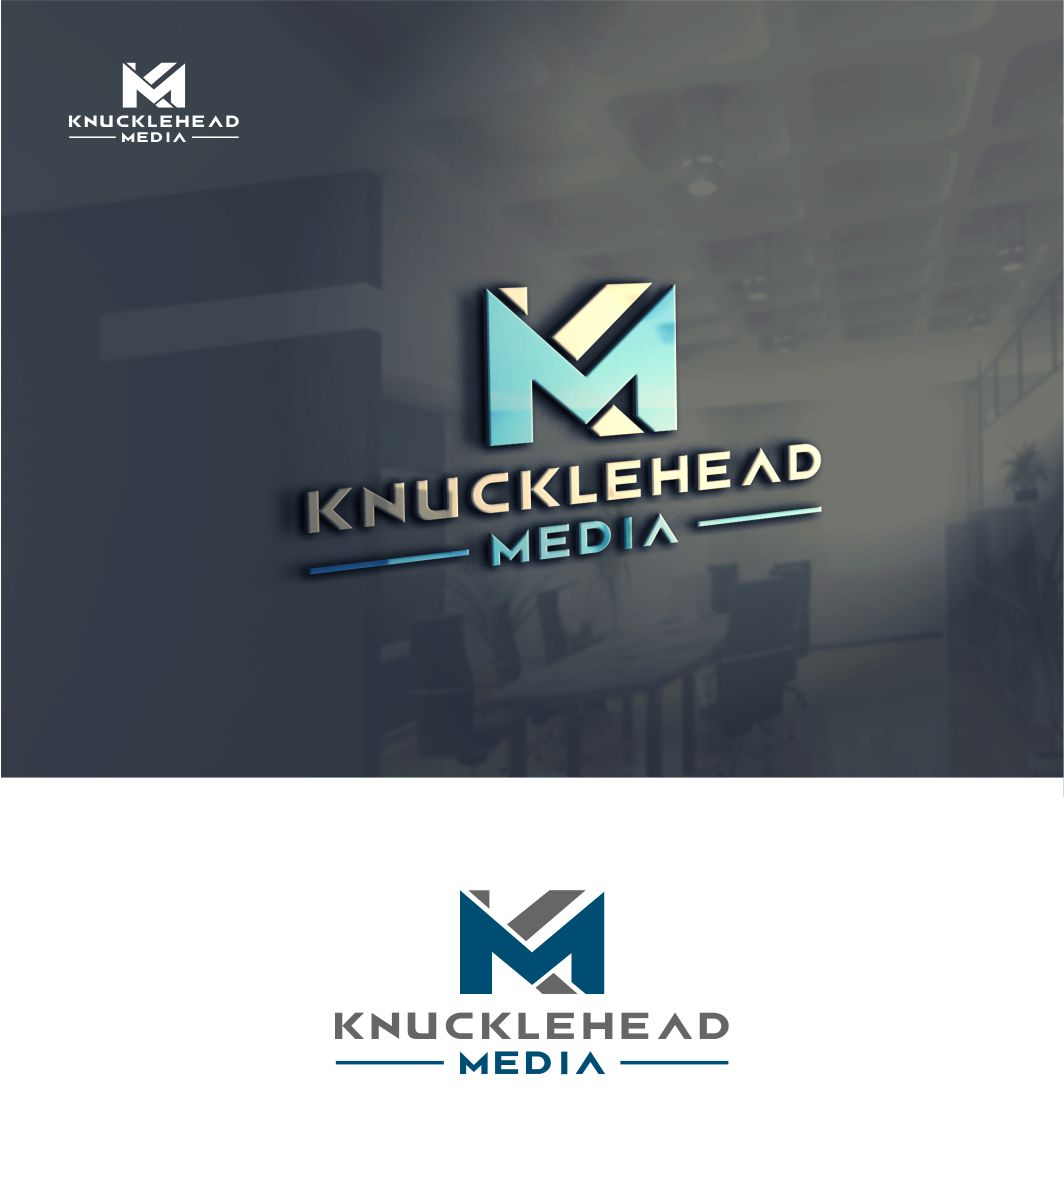 Logo Design by Raymond Garcia - Entry No. 23 in the Logo Design Contest Imaginative Logo Design for knucklehead media.